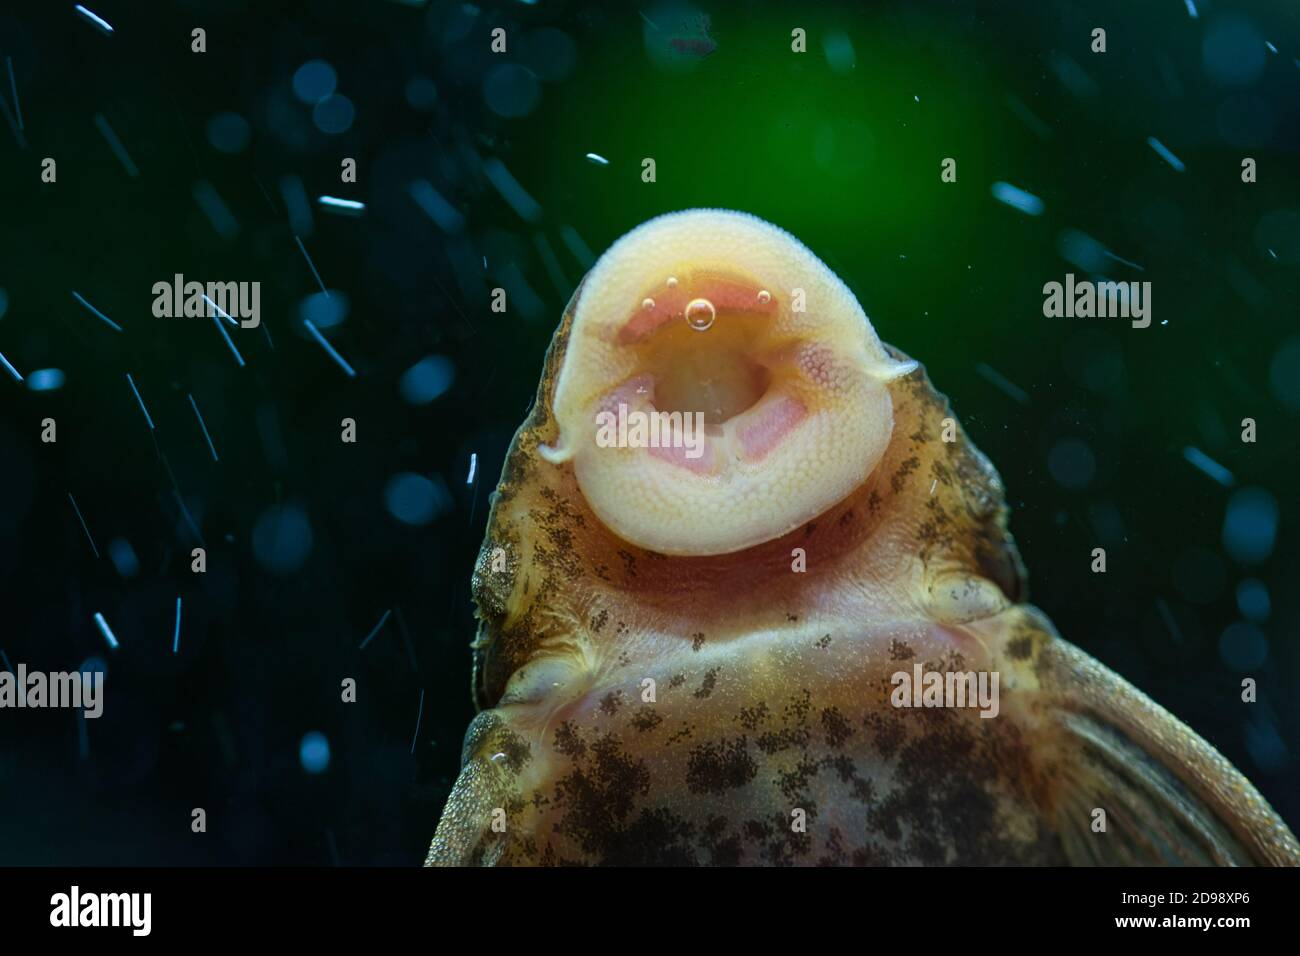 An algae eater fish sucking algae off aquarium tank wall, detailed close up texture of fish mouth and underside of the body, dark green blurred backgr Stock Photo